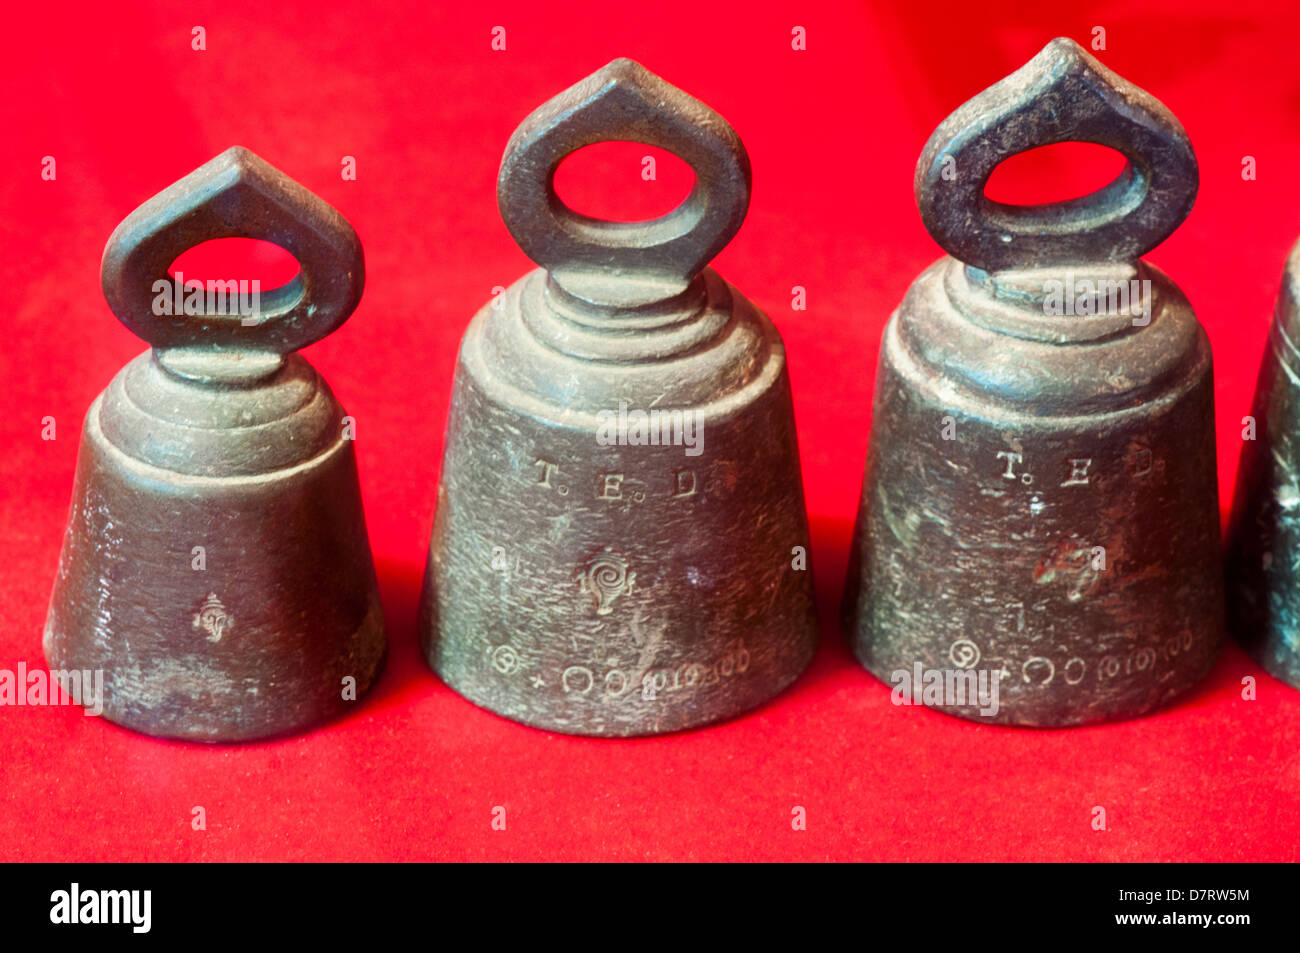 Ranthal - Tolas, unit of measures used in ancient British Indian system - Stock Image